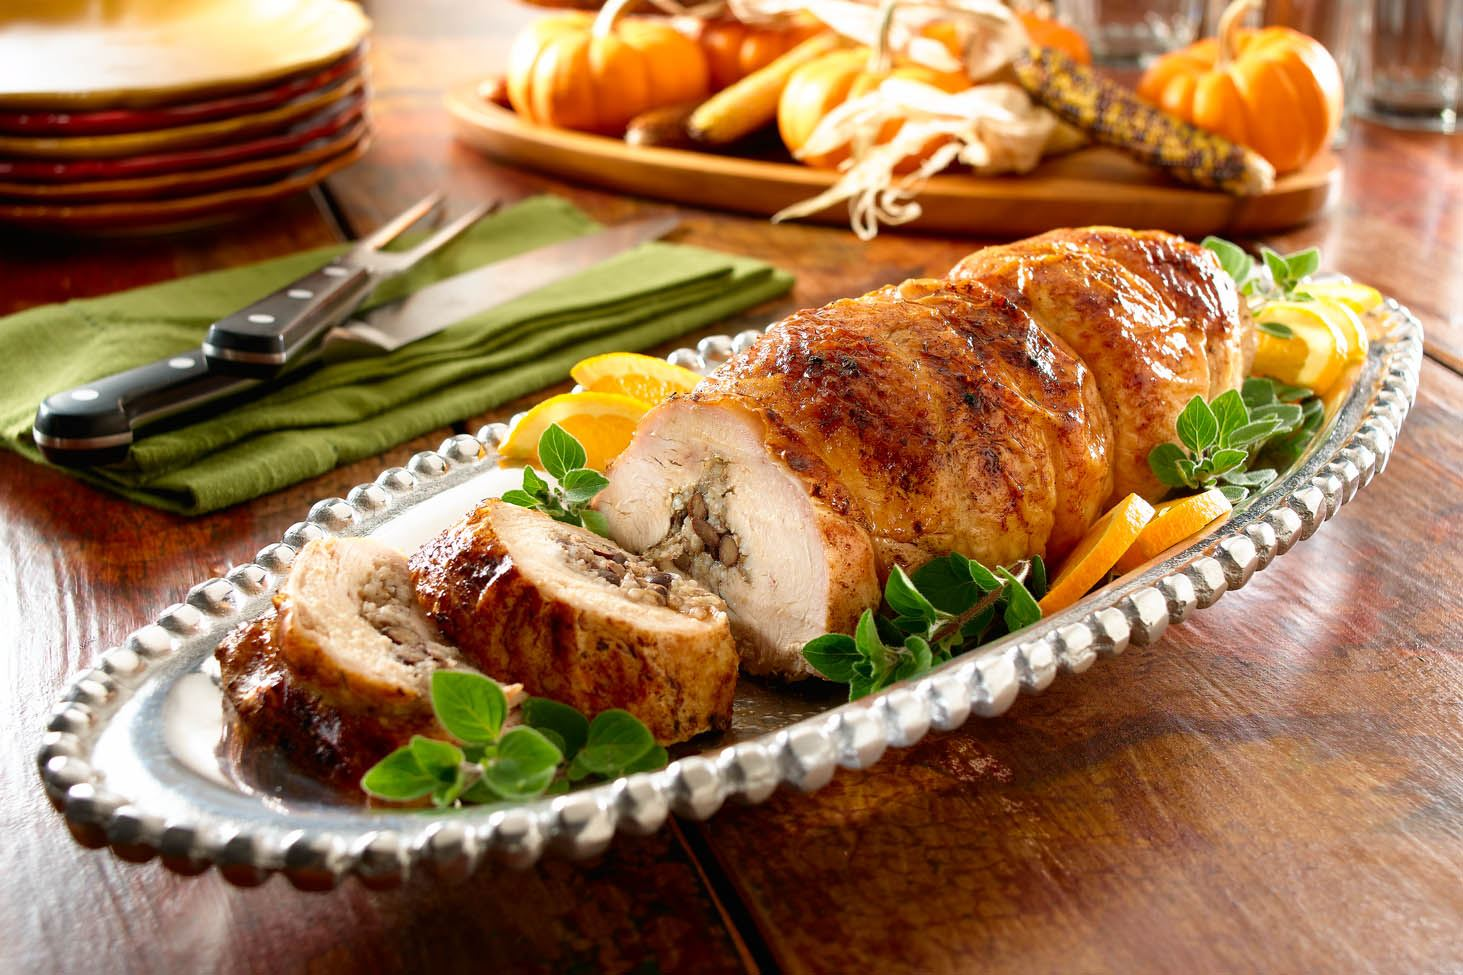 Turkey Breast Stuffed with Rice and Beans